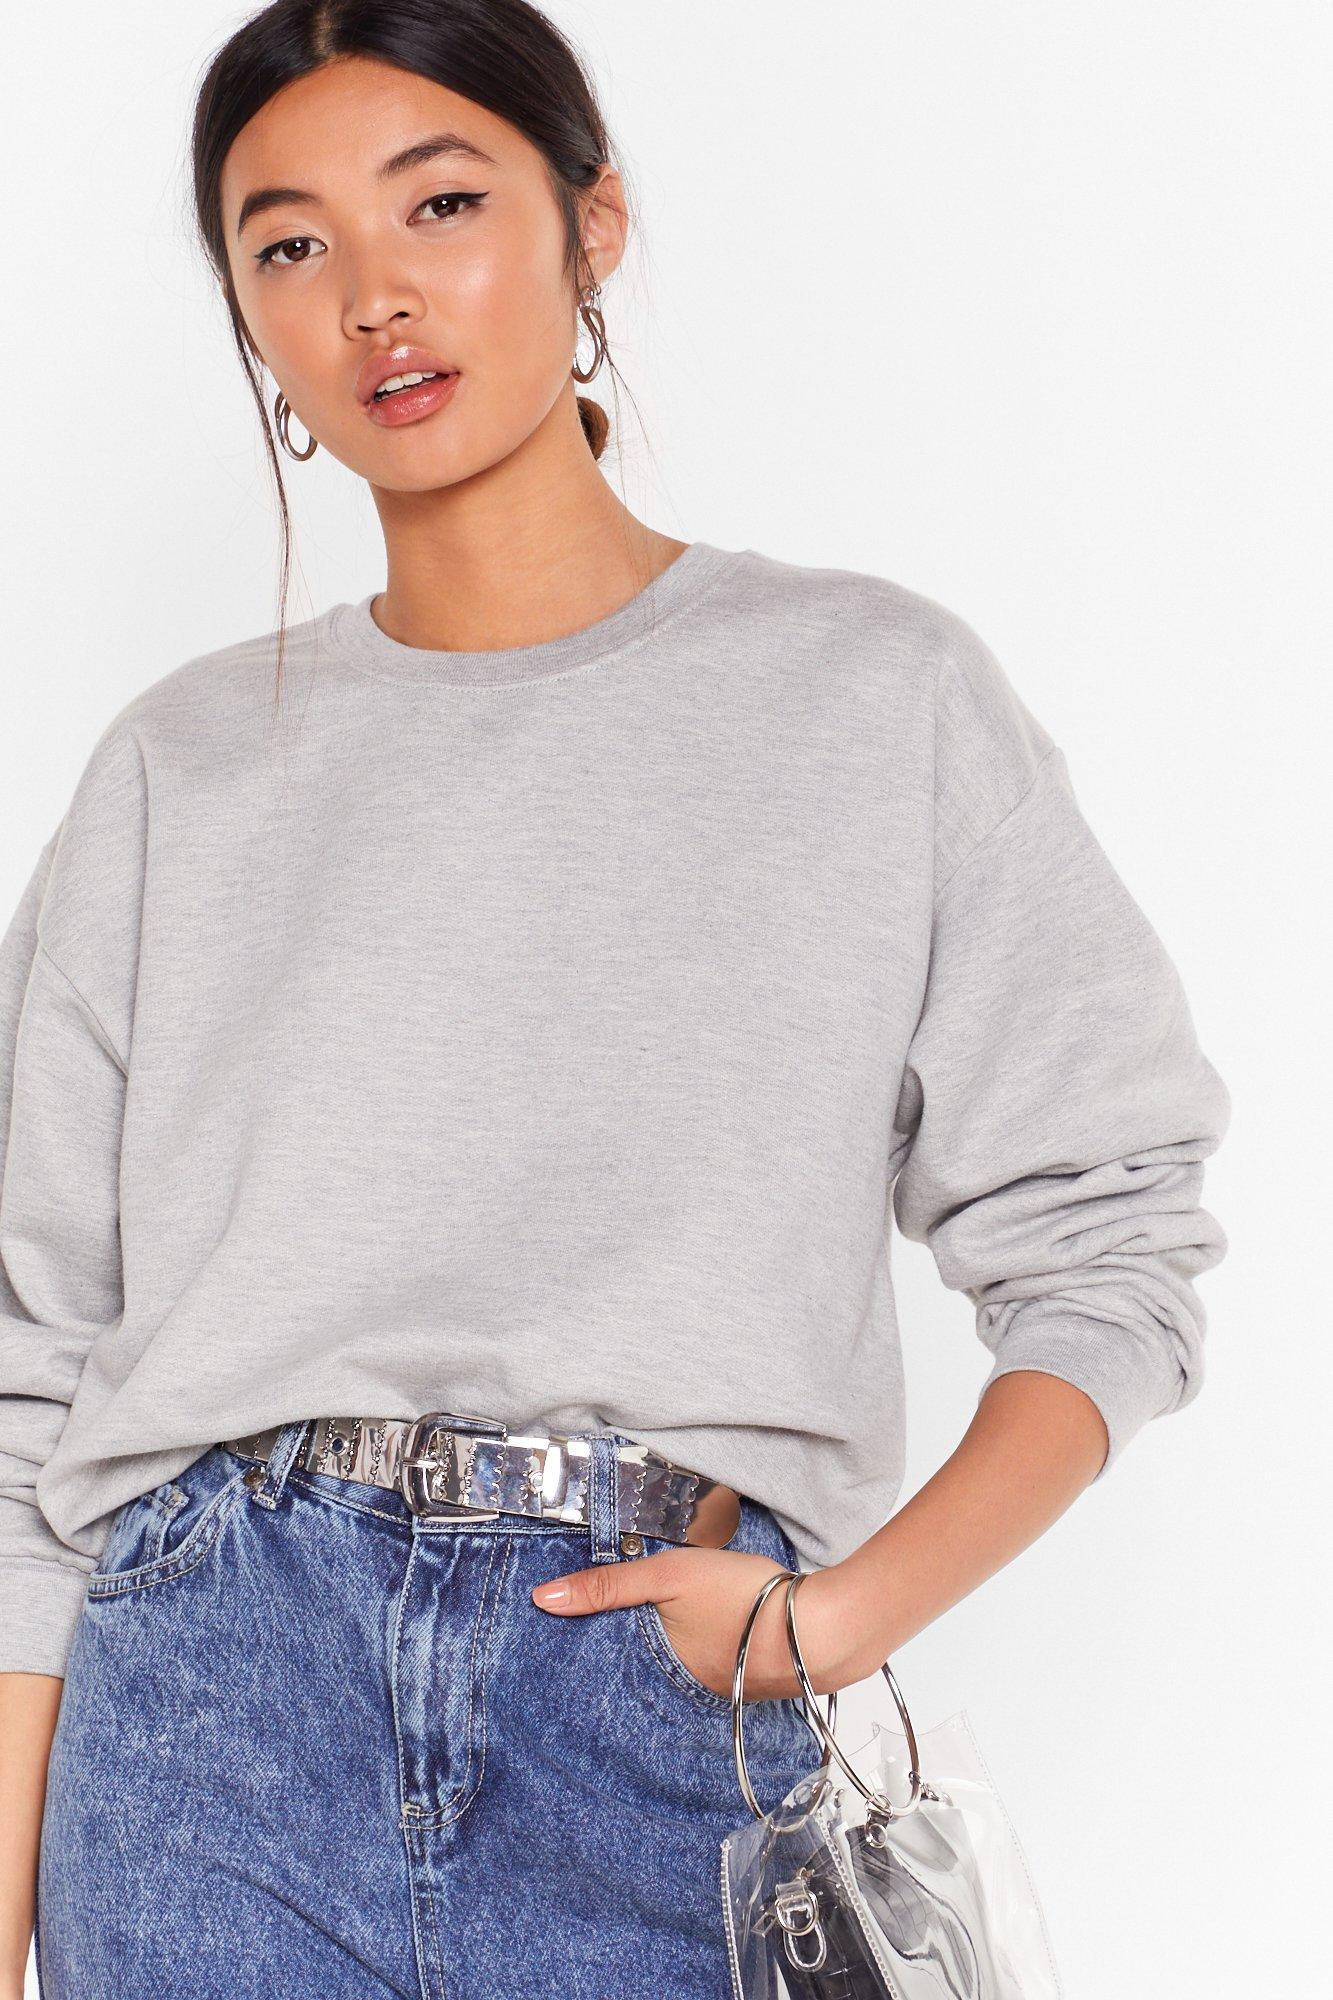 Image of Workin' Up a Sweat Relaxed Sweatshirt